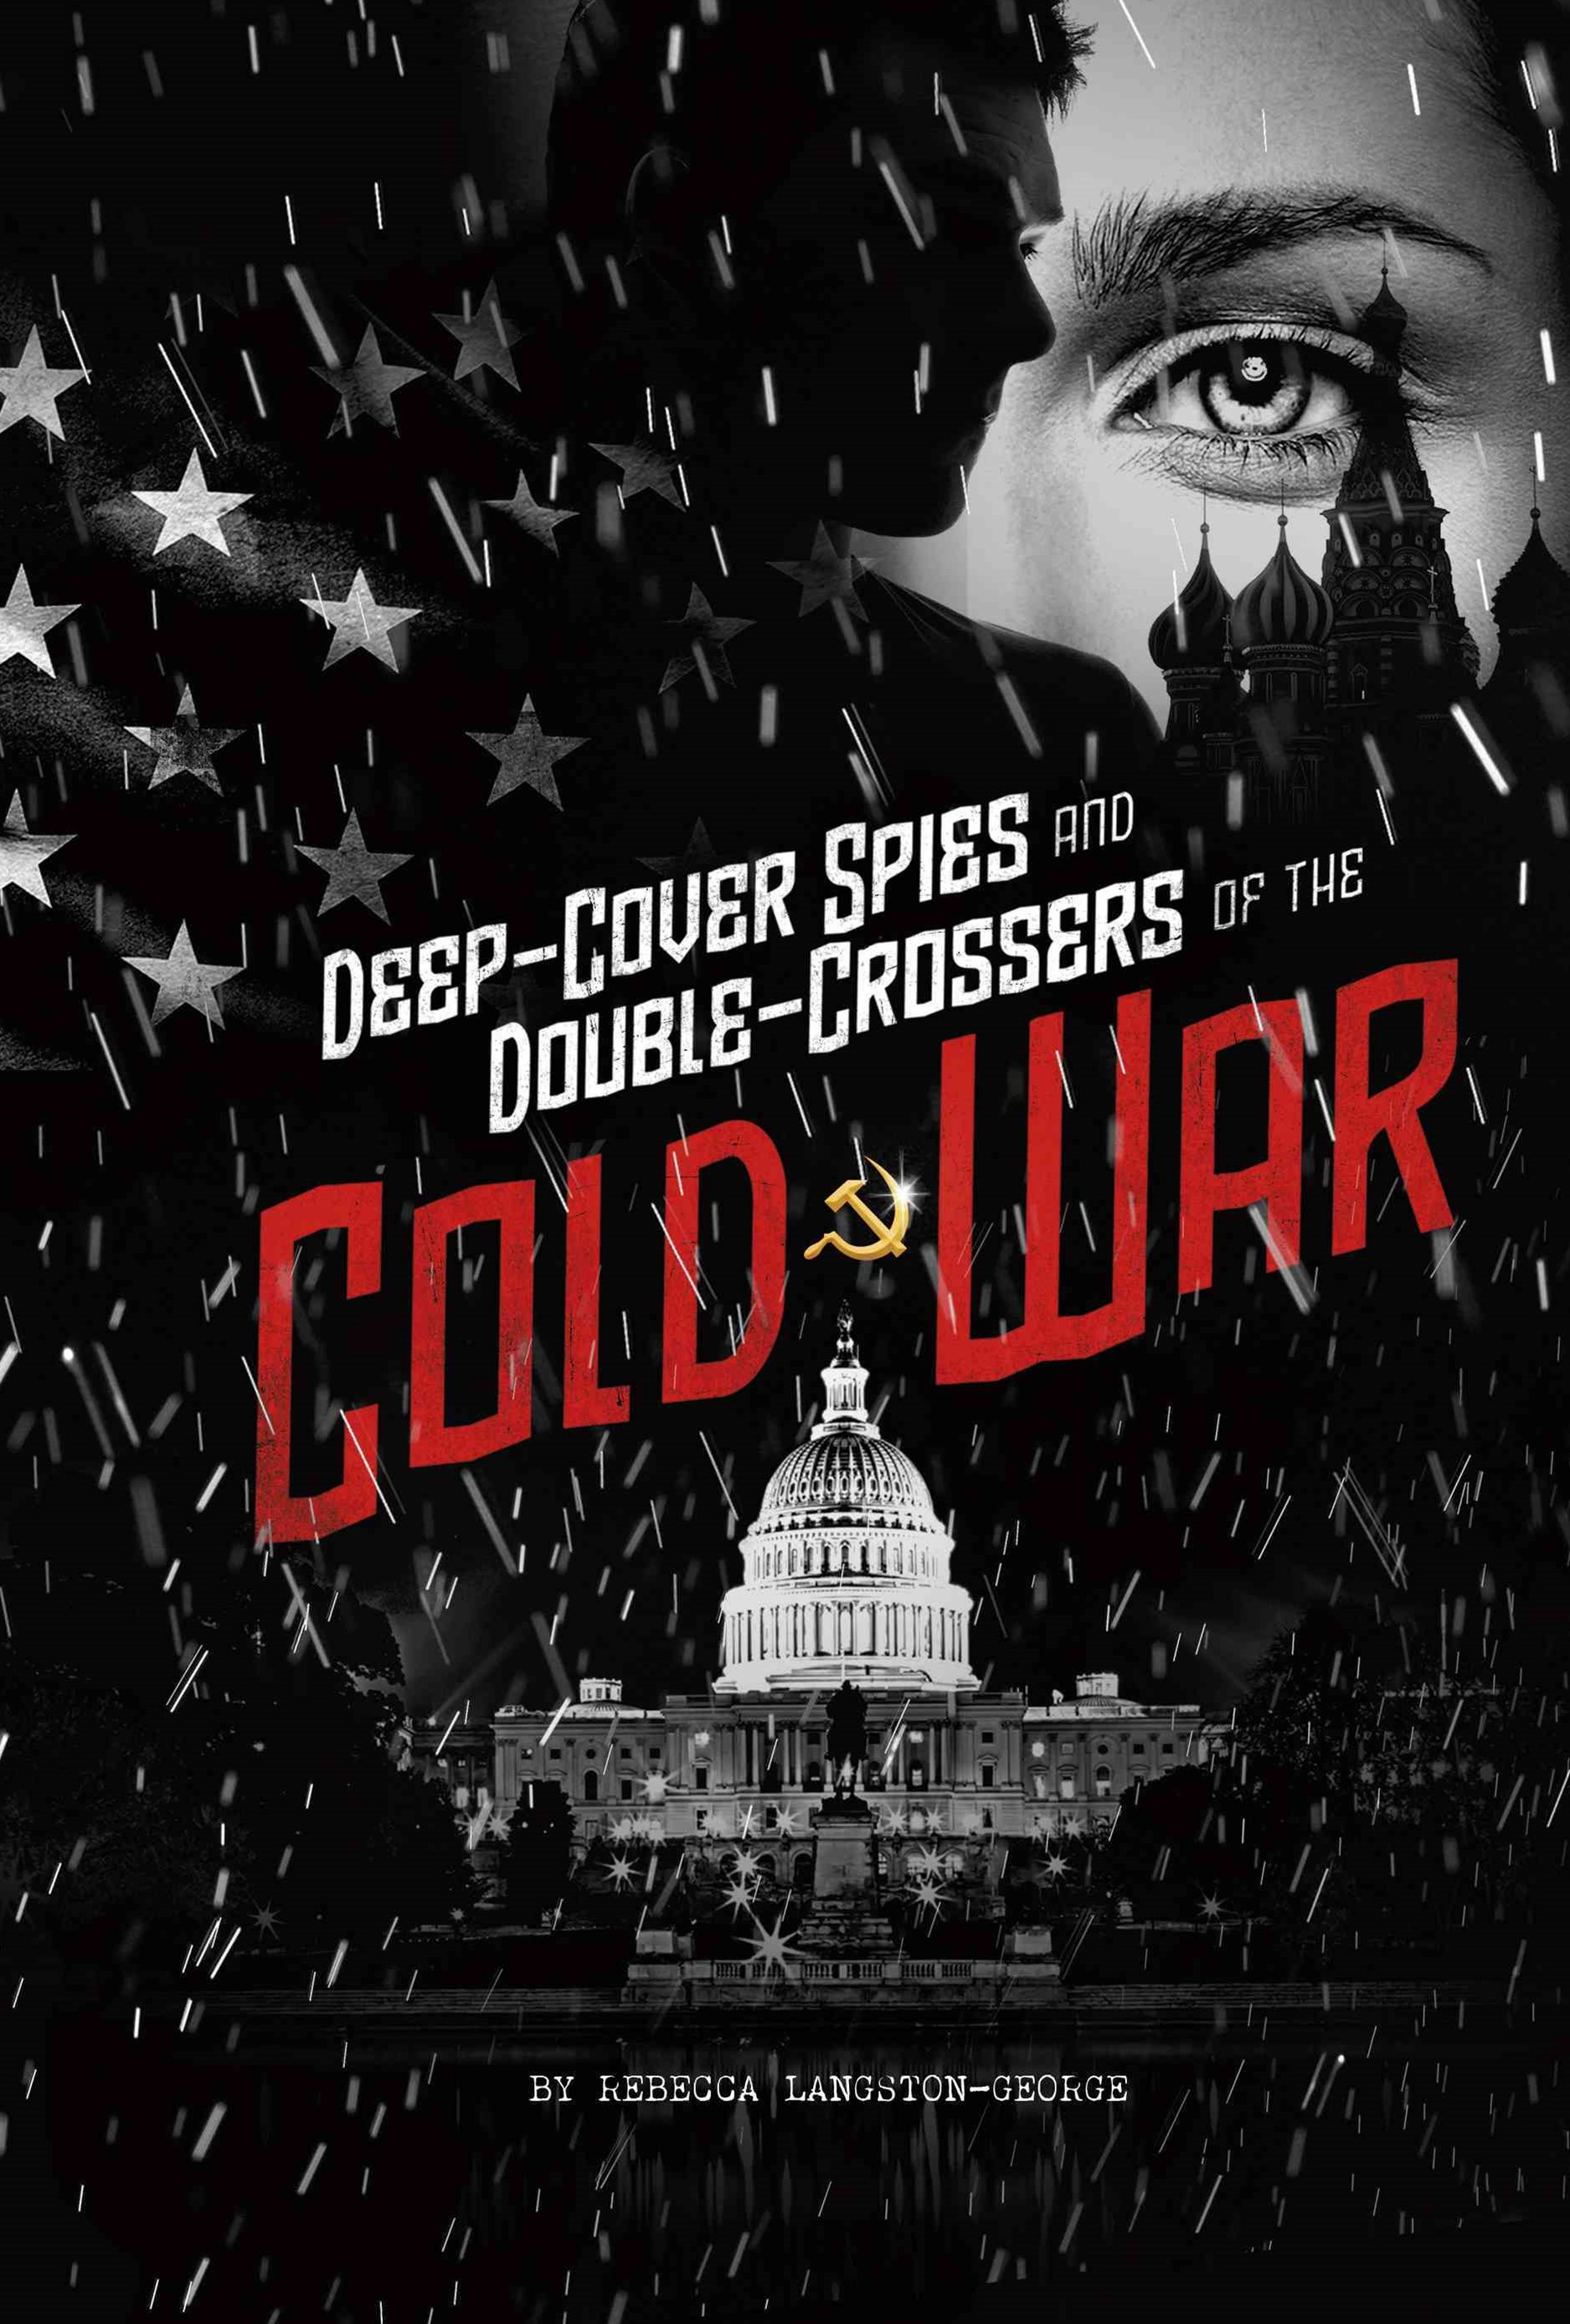 Spies!: Deep-Cover Spies and Double-Crossers of the Cold War